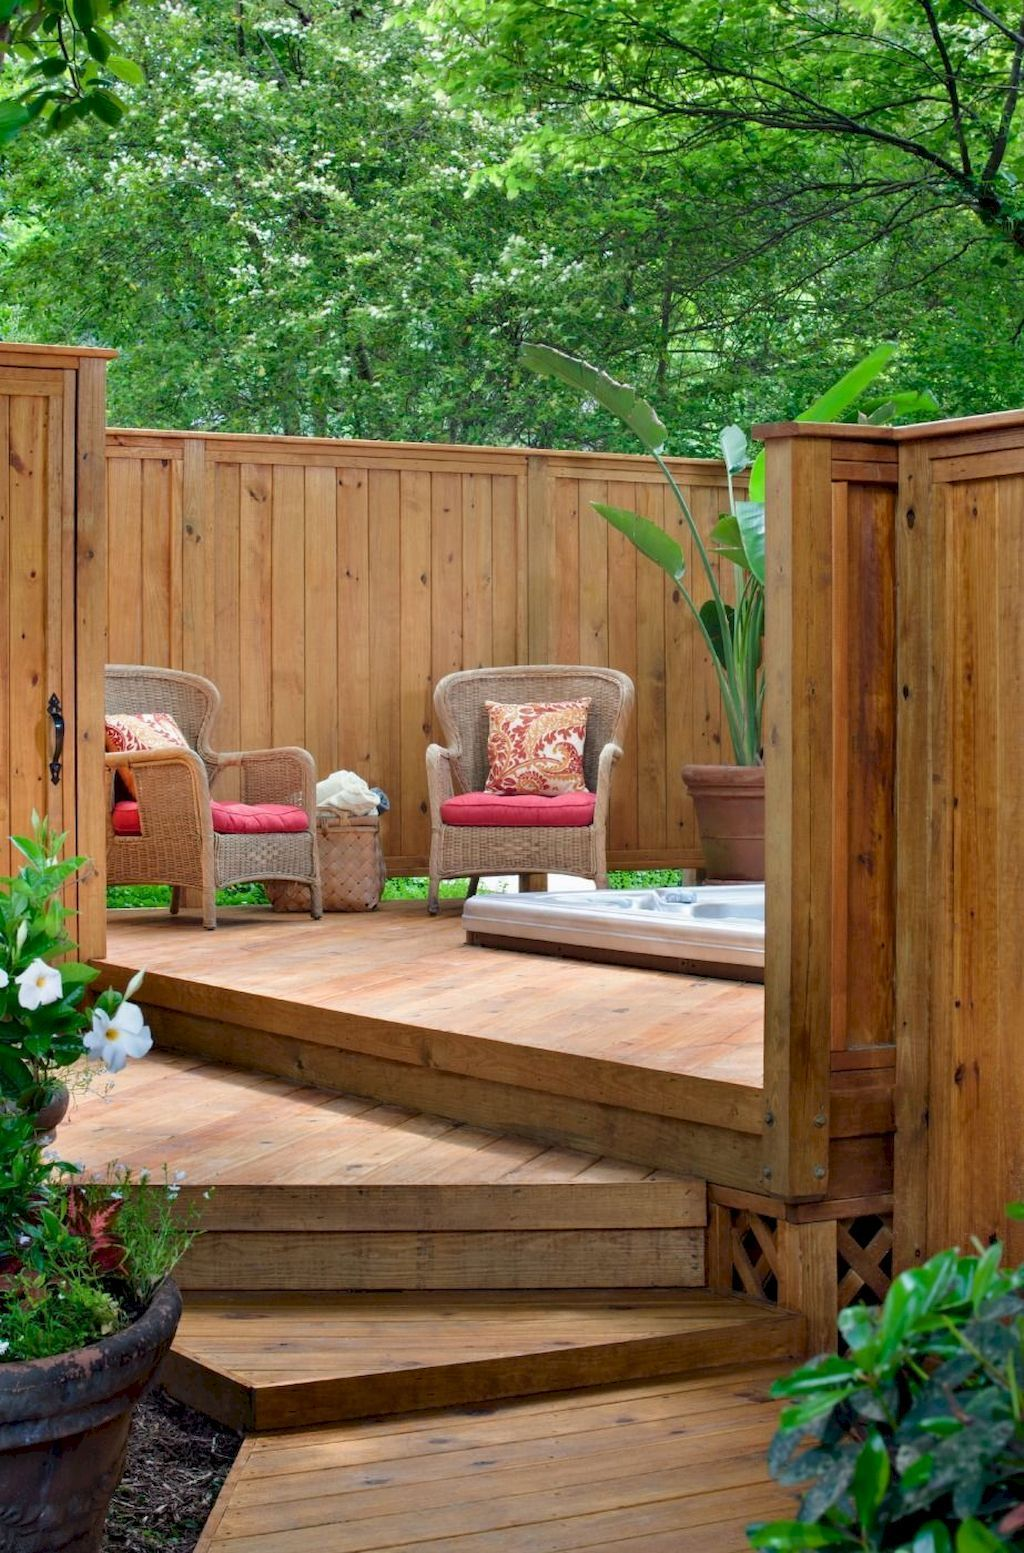 53 easy cheap backyard privacy fence design ideas douche on inspiring trends front yard landscaping ideas minimal budget id=32253